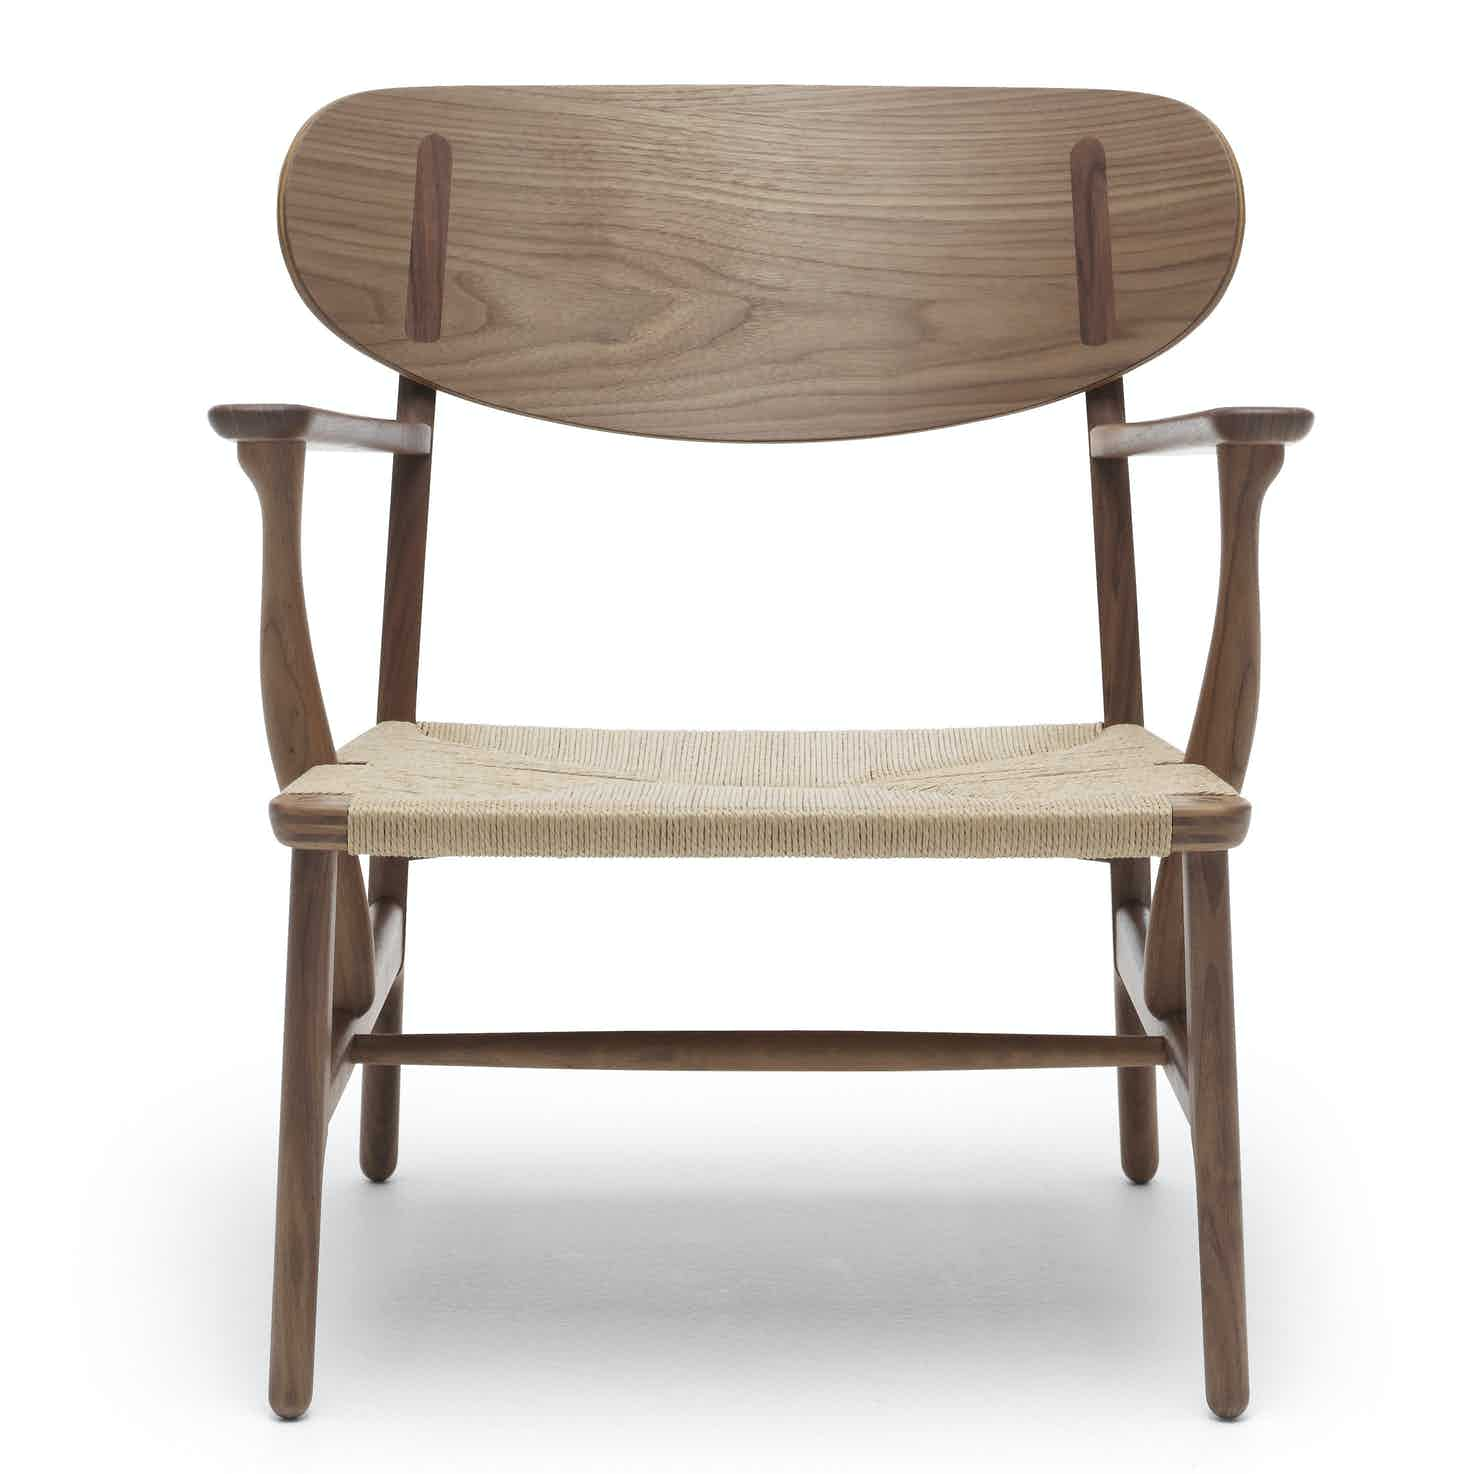 Carl-hansen-son-front-walnut-ch22-haute-living